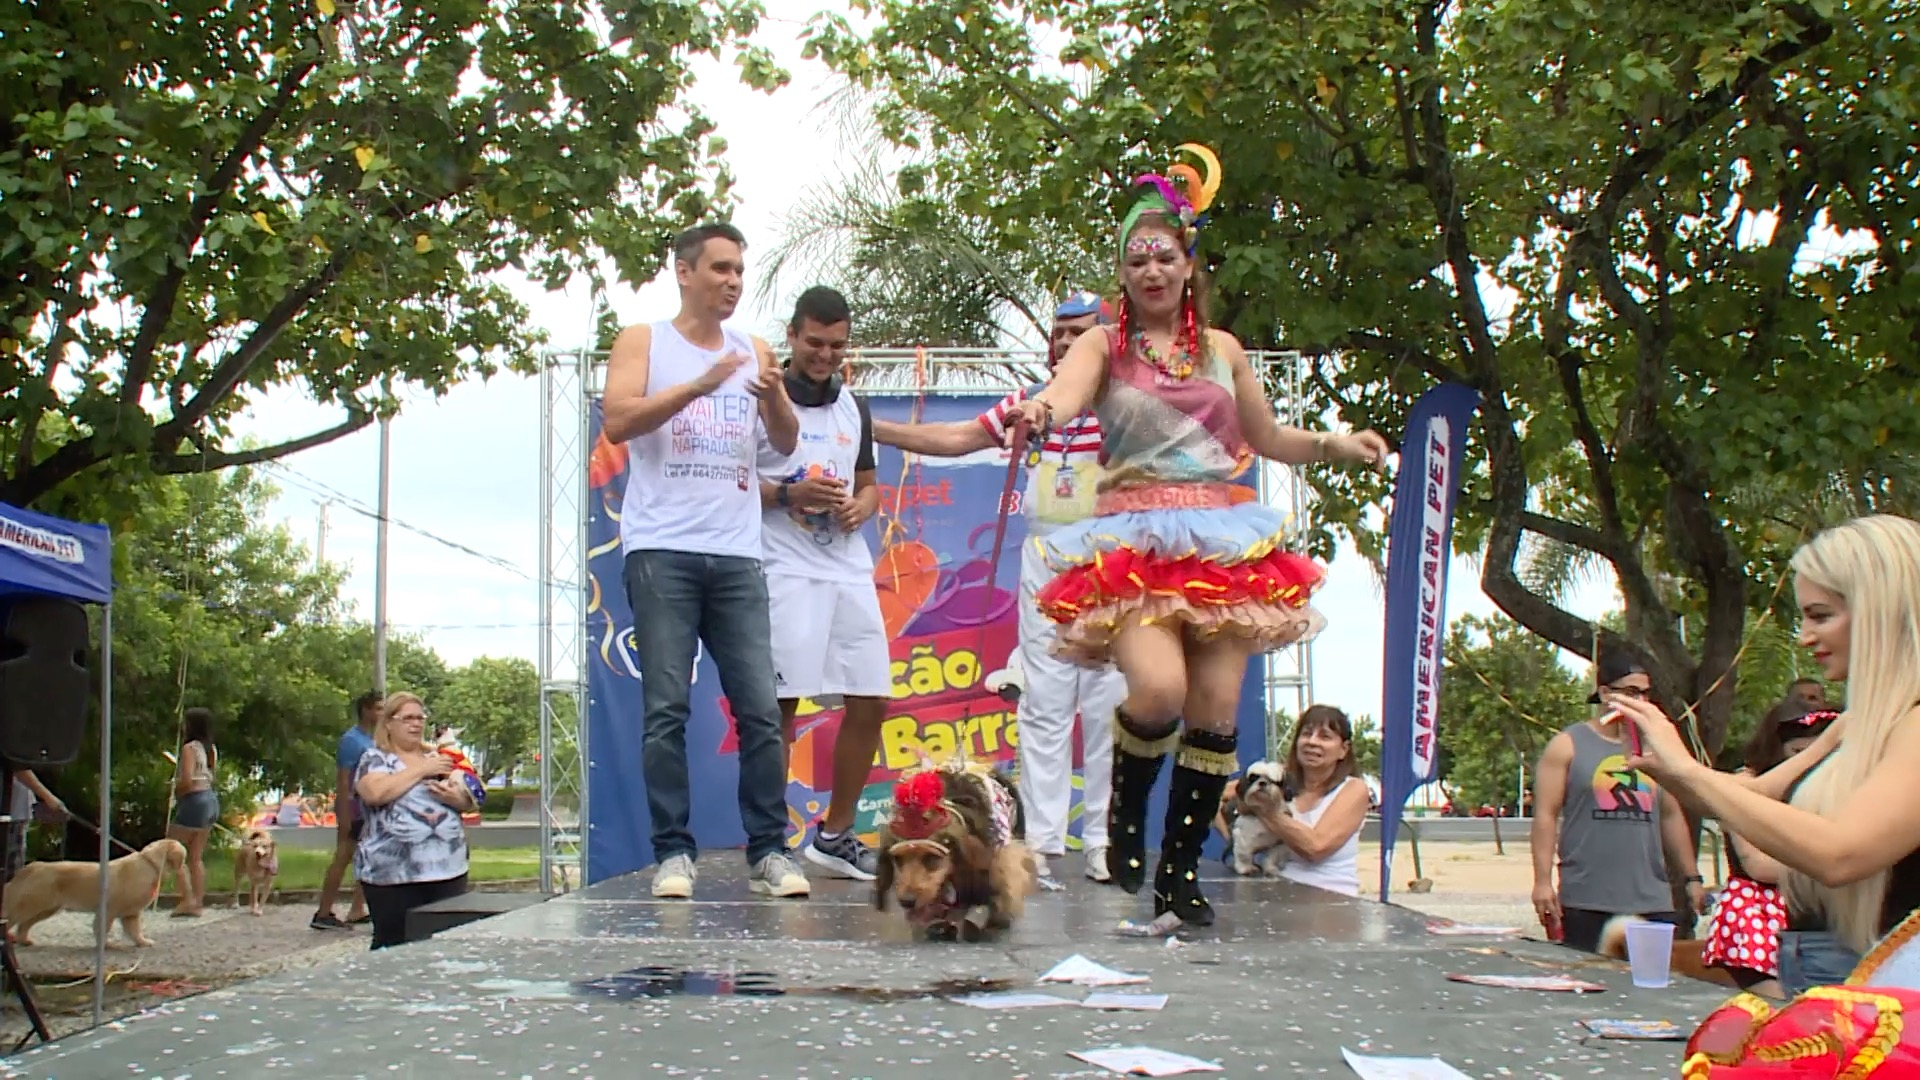 Brazilian party animals have their own carnival parade